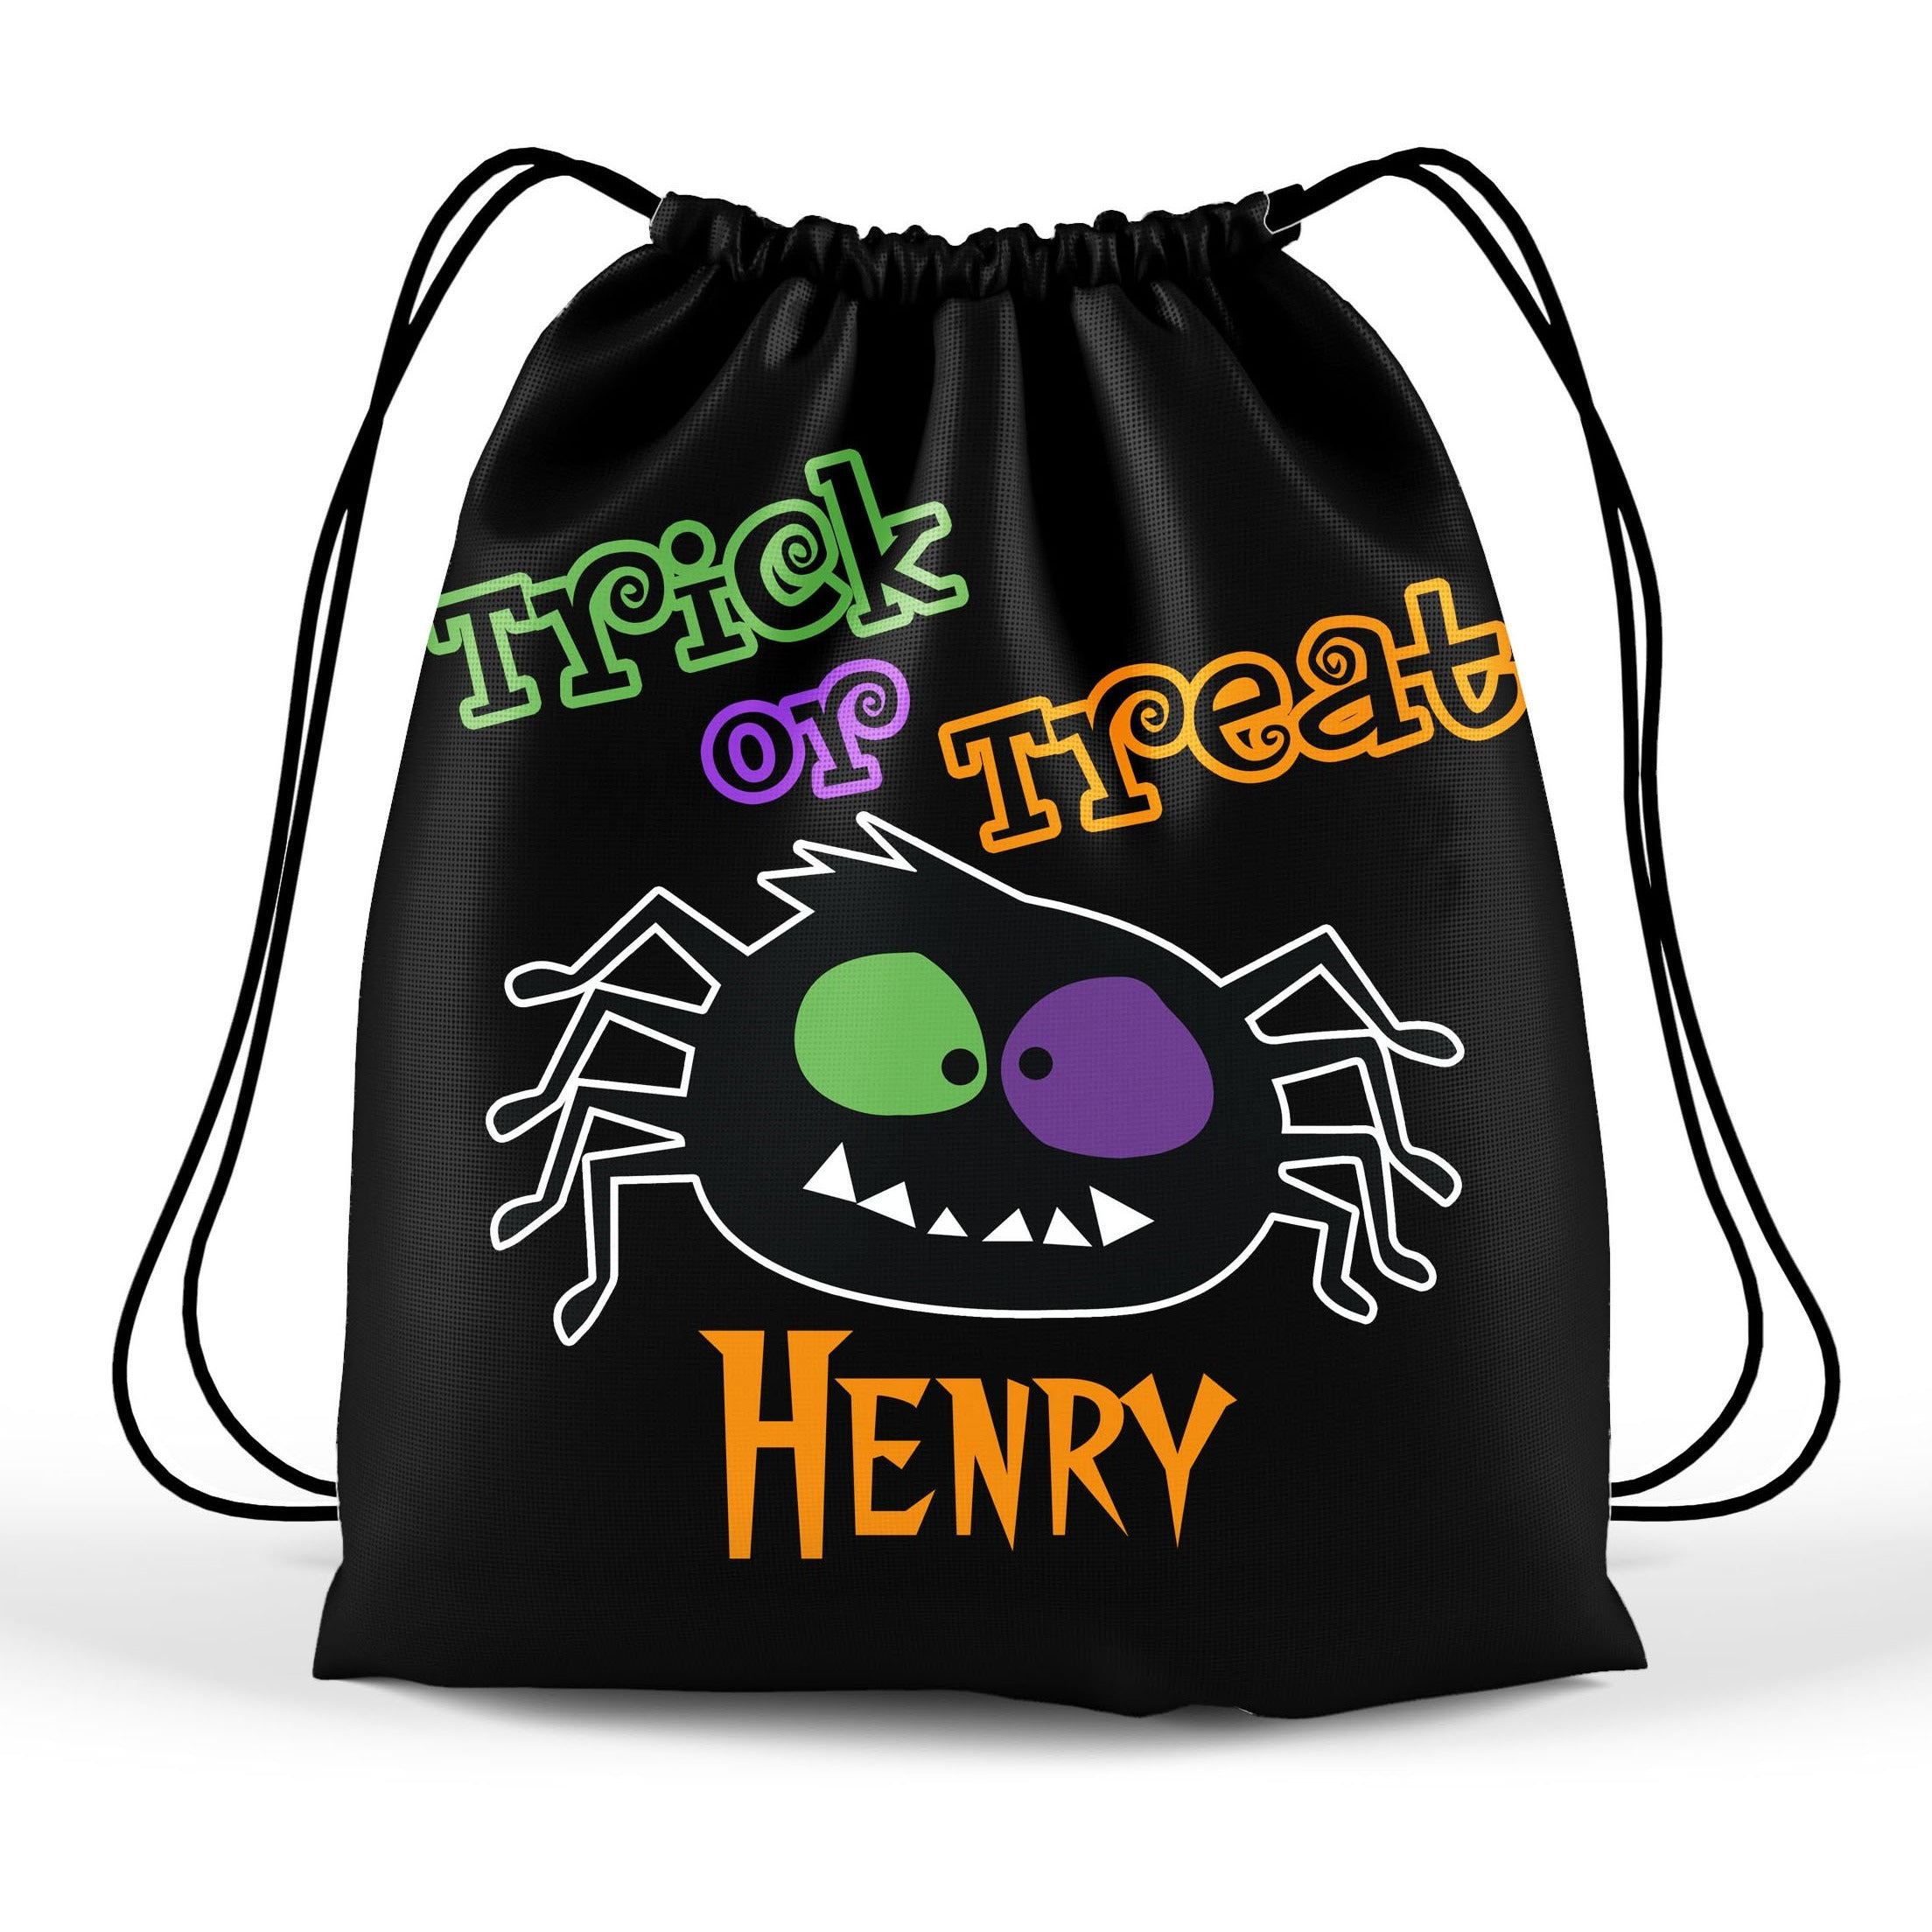 Halloween Trick Or Treat Bags Personalized.Personalized Halloween Trick Or Treat Bag Kids Drawstring Bag Spooky Spider